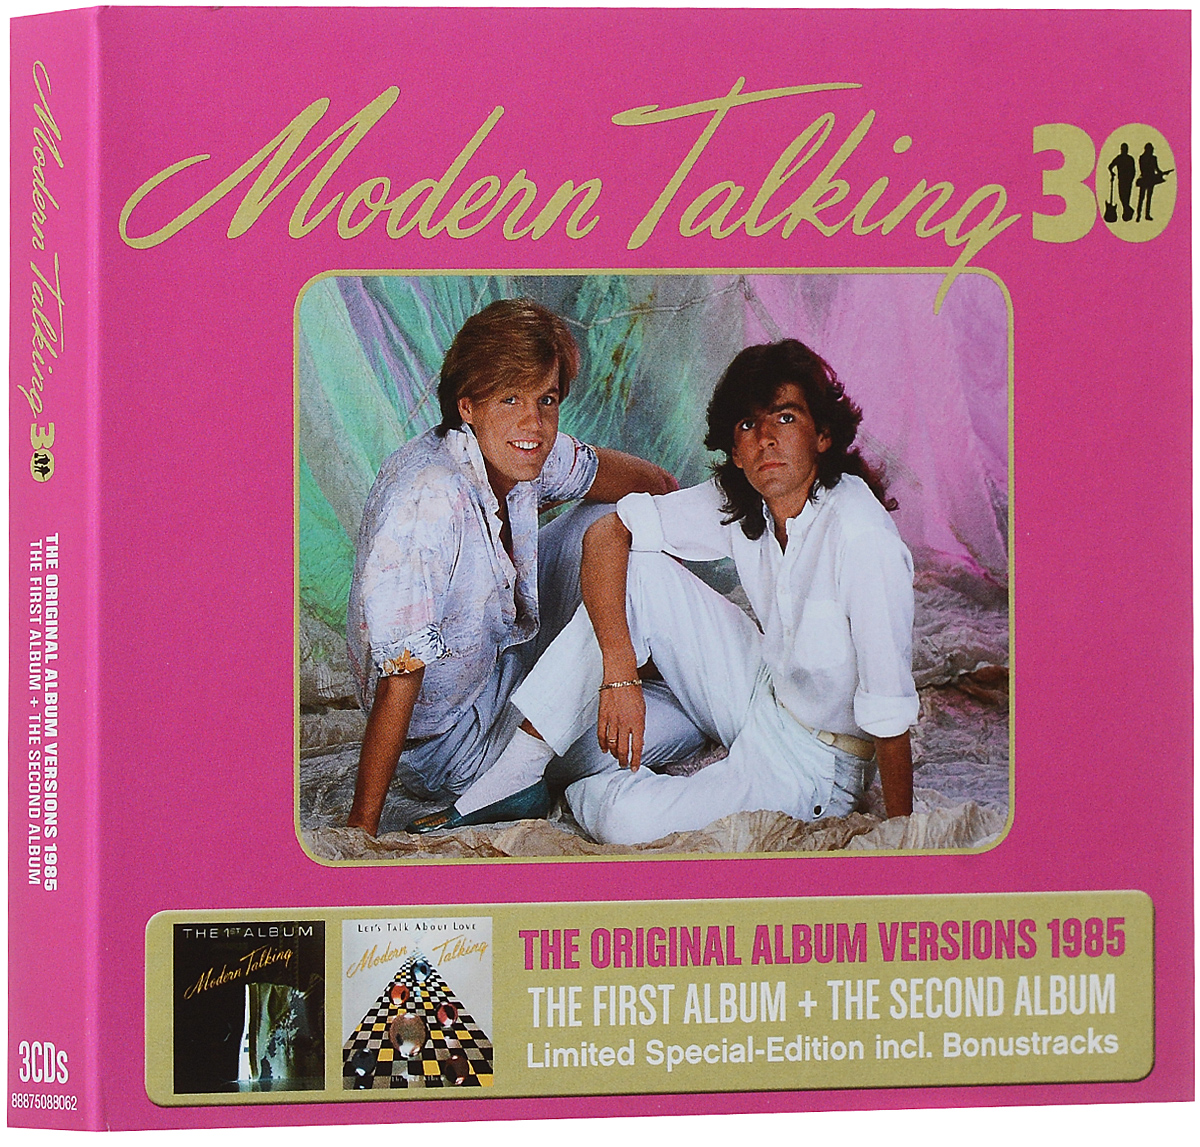 Modern Talking Modern Talking. The Original Album Versions 1985. Limited Special-Edition (3 CD) selena limited edition picture disc cd rare collectible music display